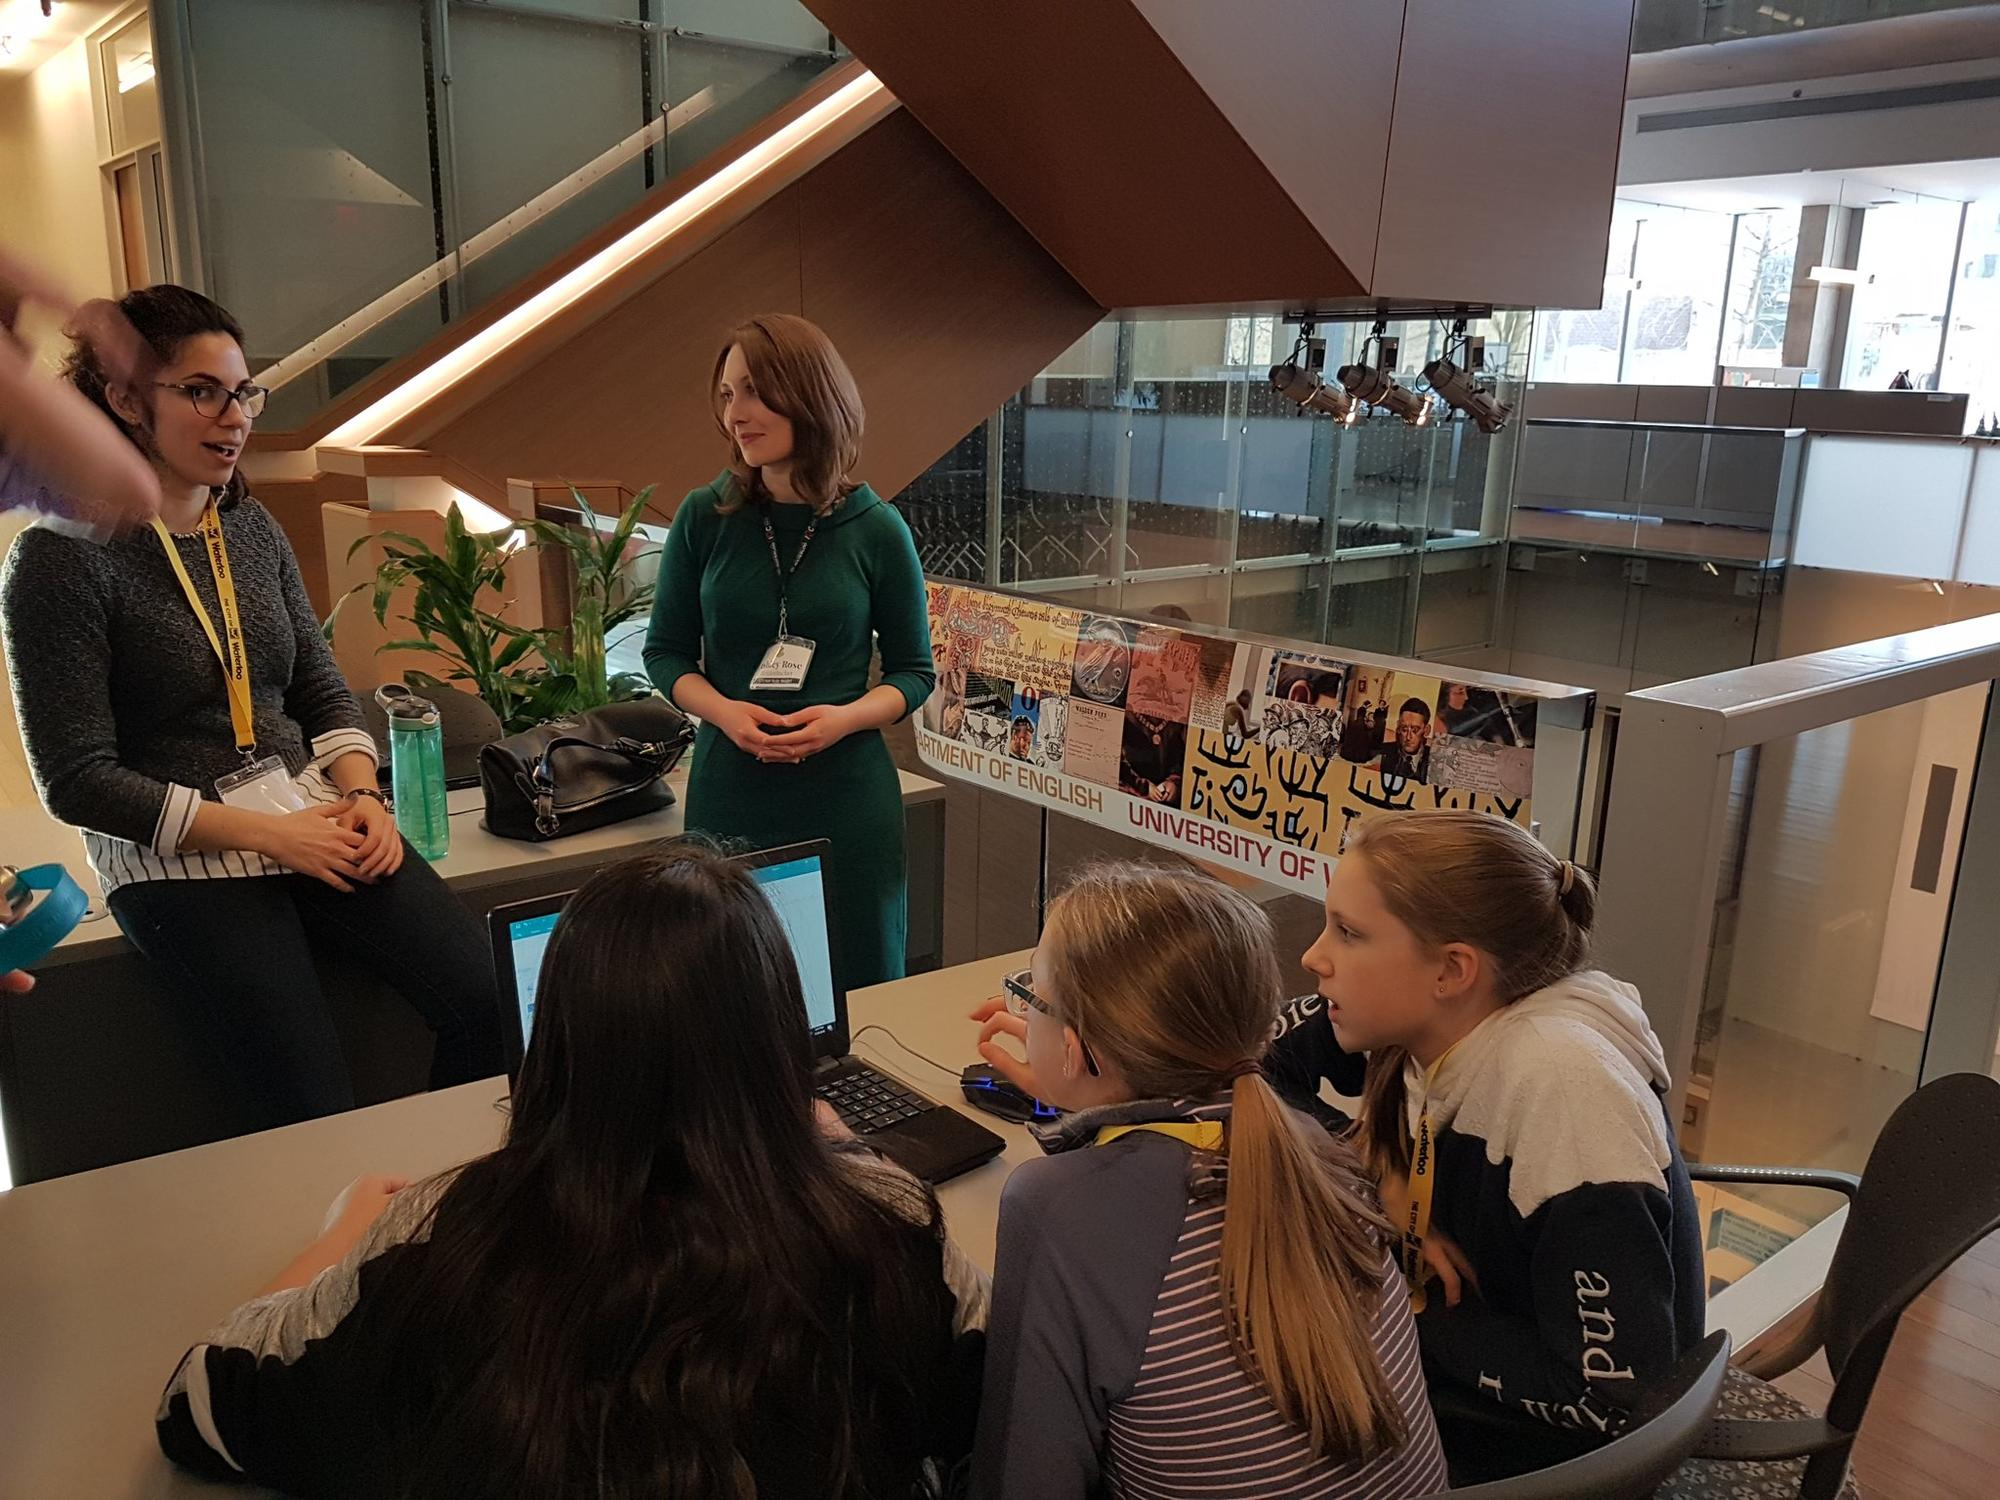 NE team at a Girls in STEAM event at the University of Waterloo